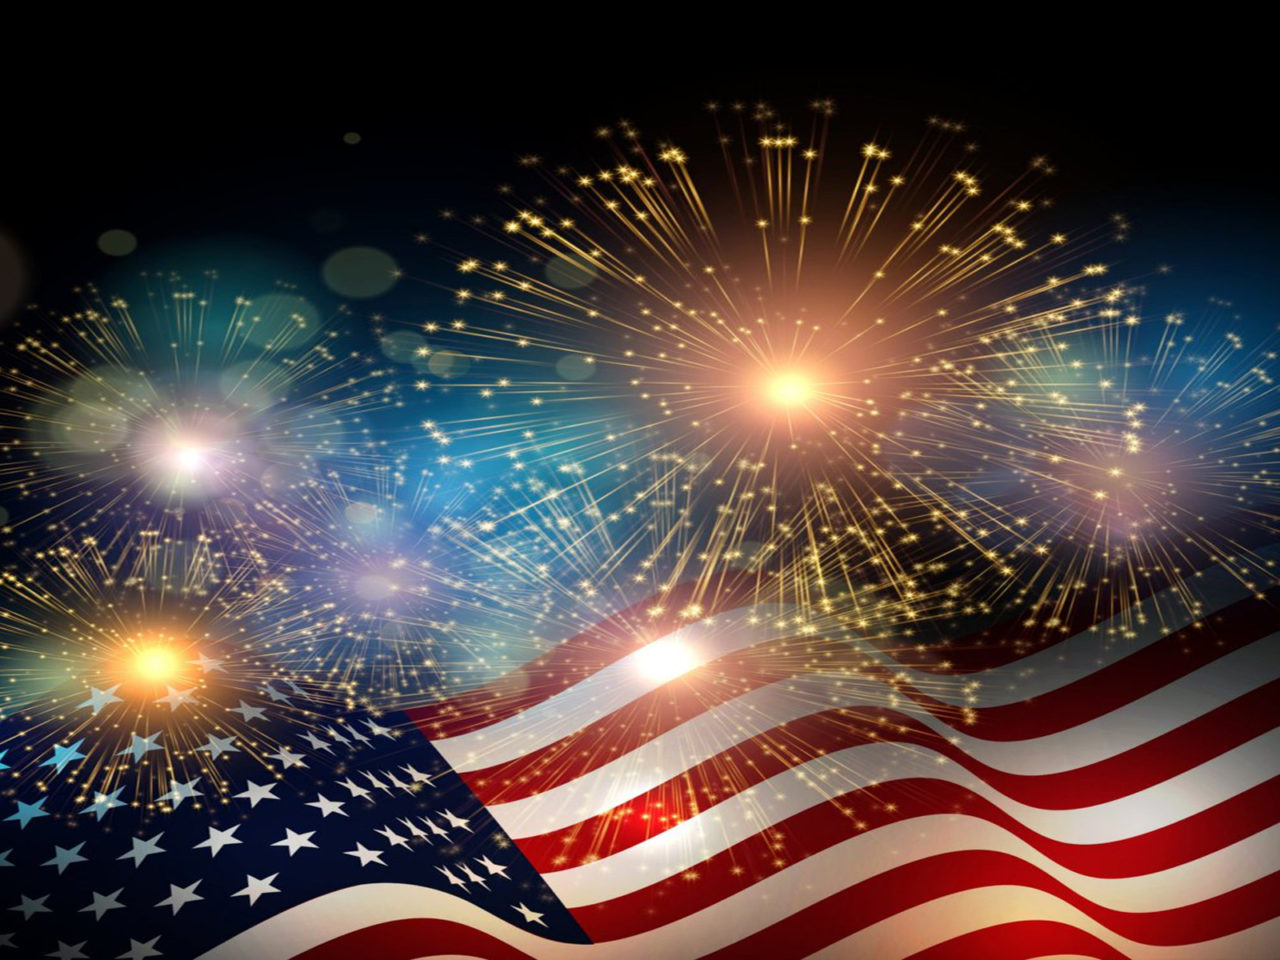 High Resolution Desktop Wallpapers Cars American Flag Fireworks Independence Day Celebrations 4